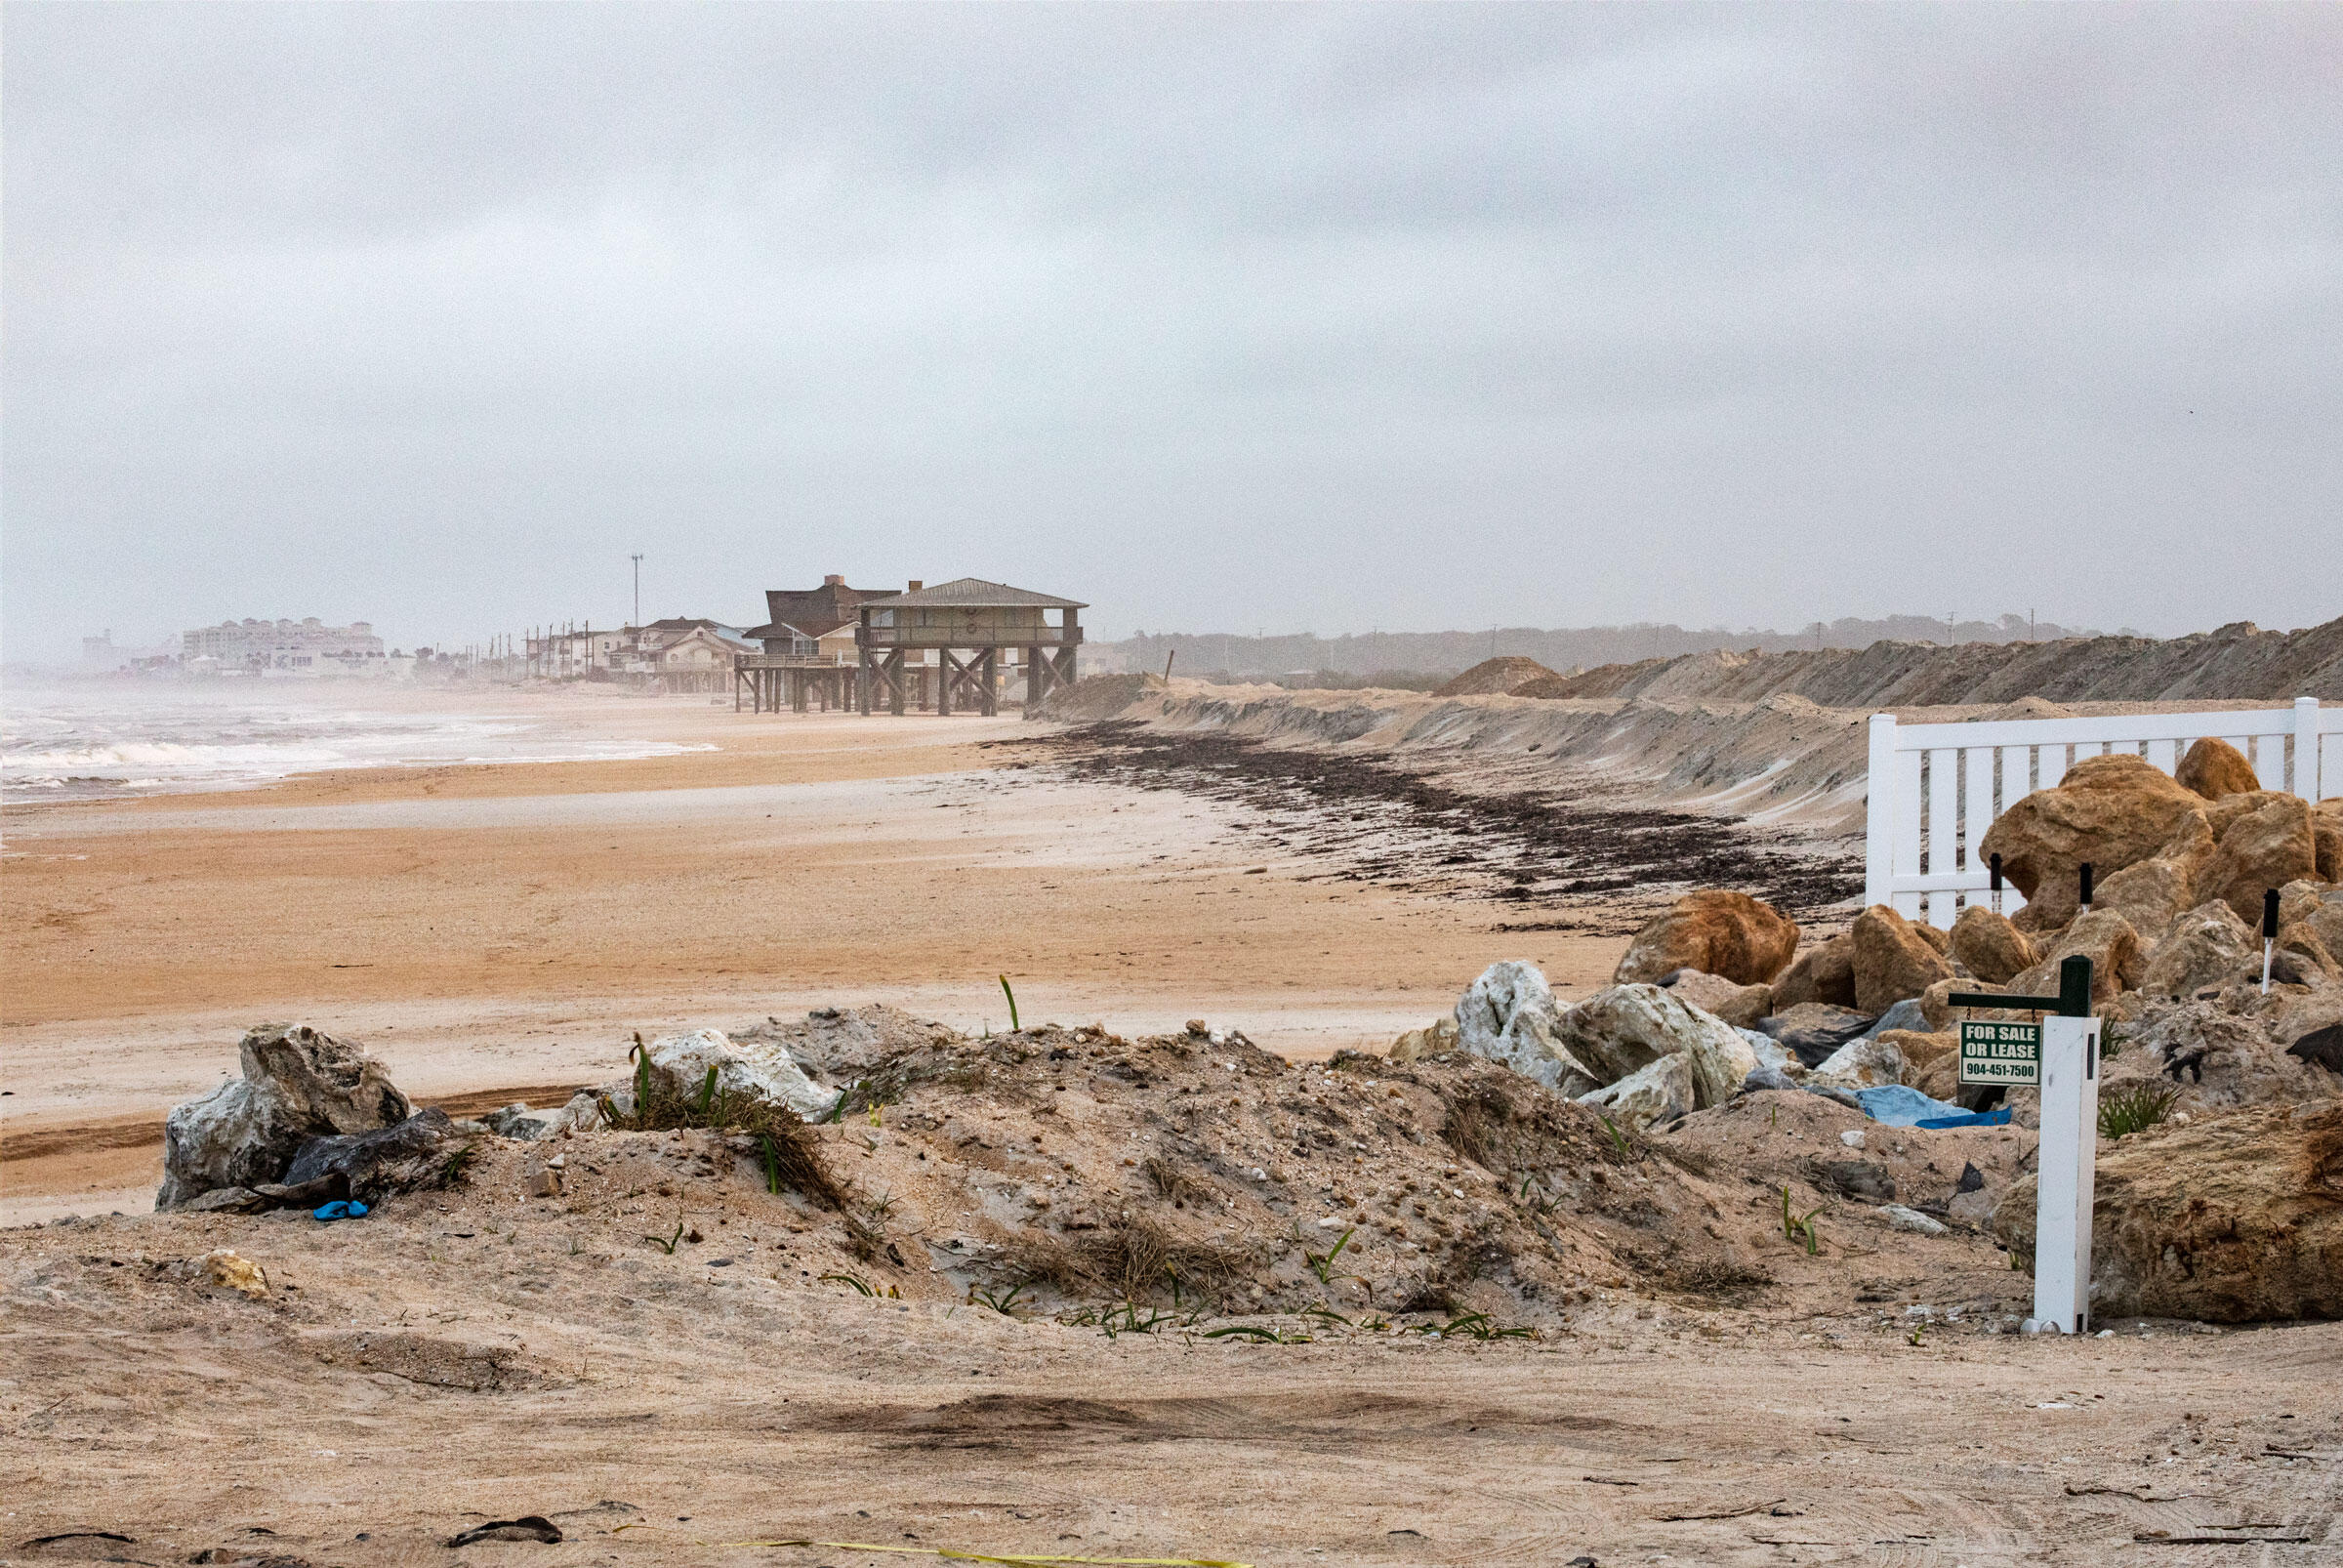 The sea has consumed the road to the resort community of Summer Haven, leaving it only accessible by trekking across the beach at low tide. Andrew Moore